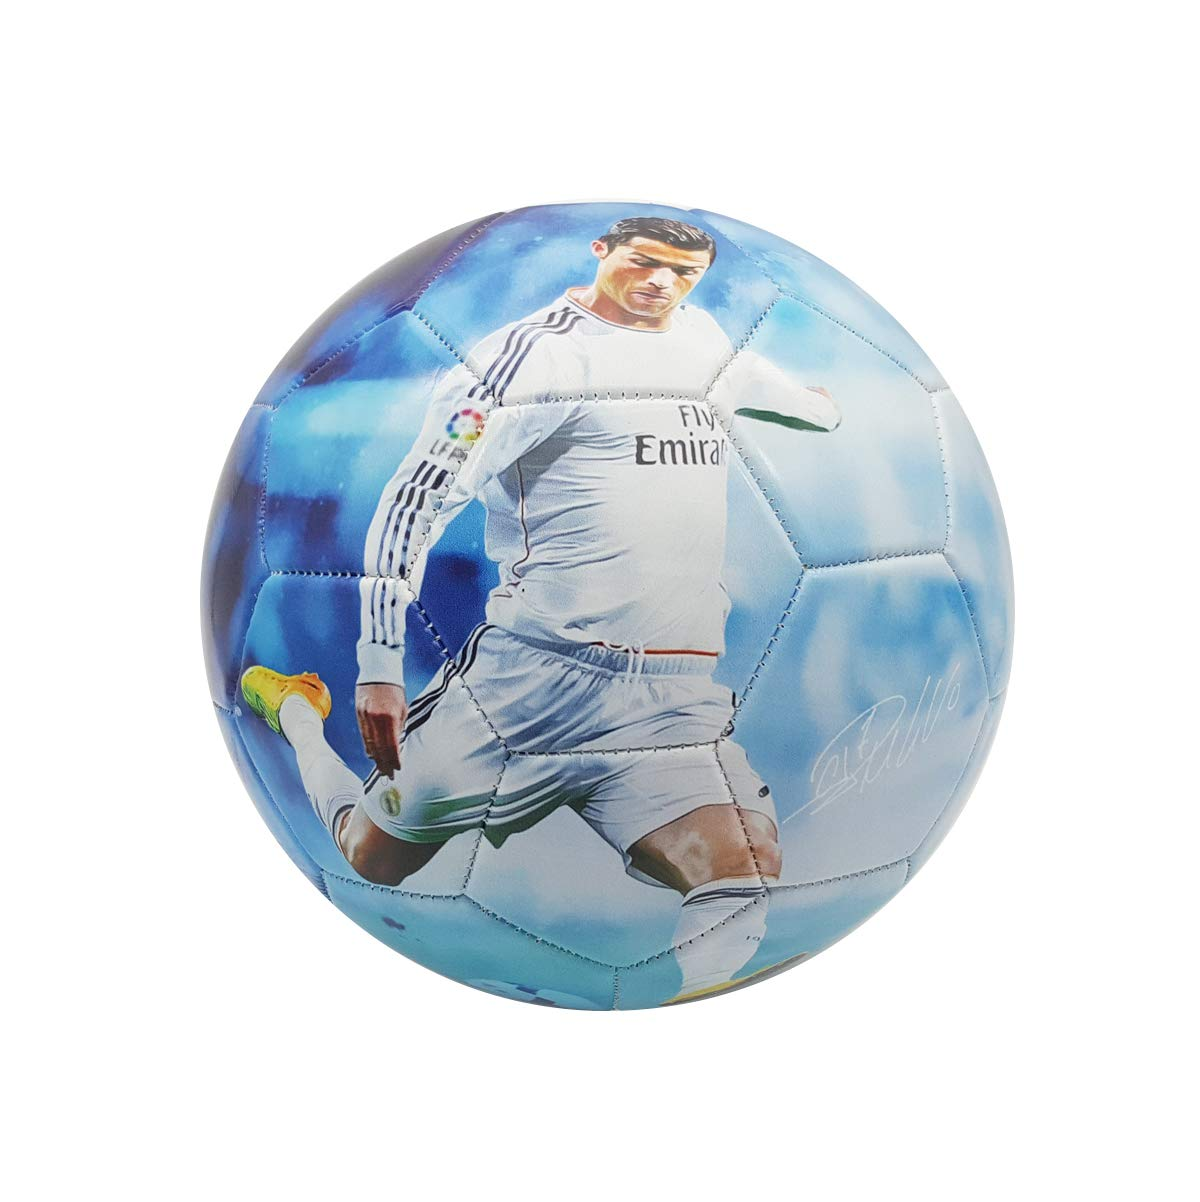 Forever Fanatics Ronaldo #7 Soccer Ball Kids & Adult Size 5 ✓ Best Gift for Fans ✓ Unique 6 Panel Design ✓ Durable Soft Touch Construction (Size 5, Ronaldo #7)